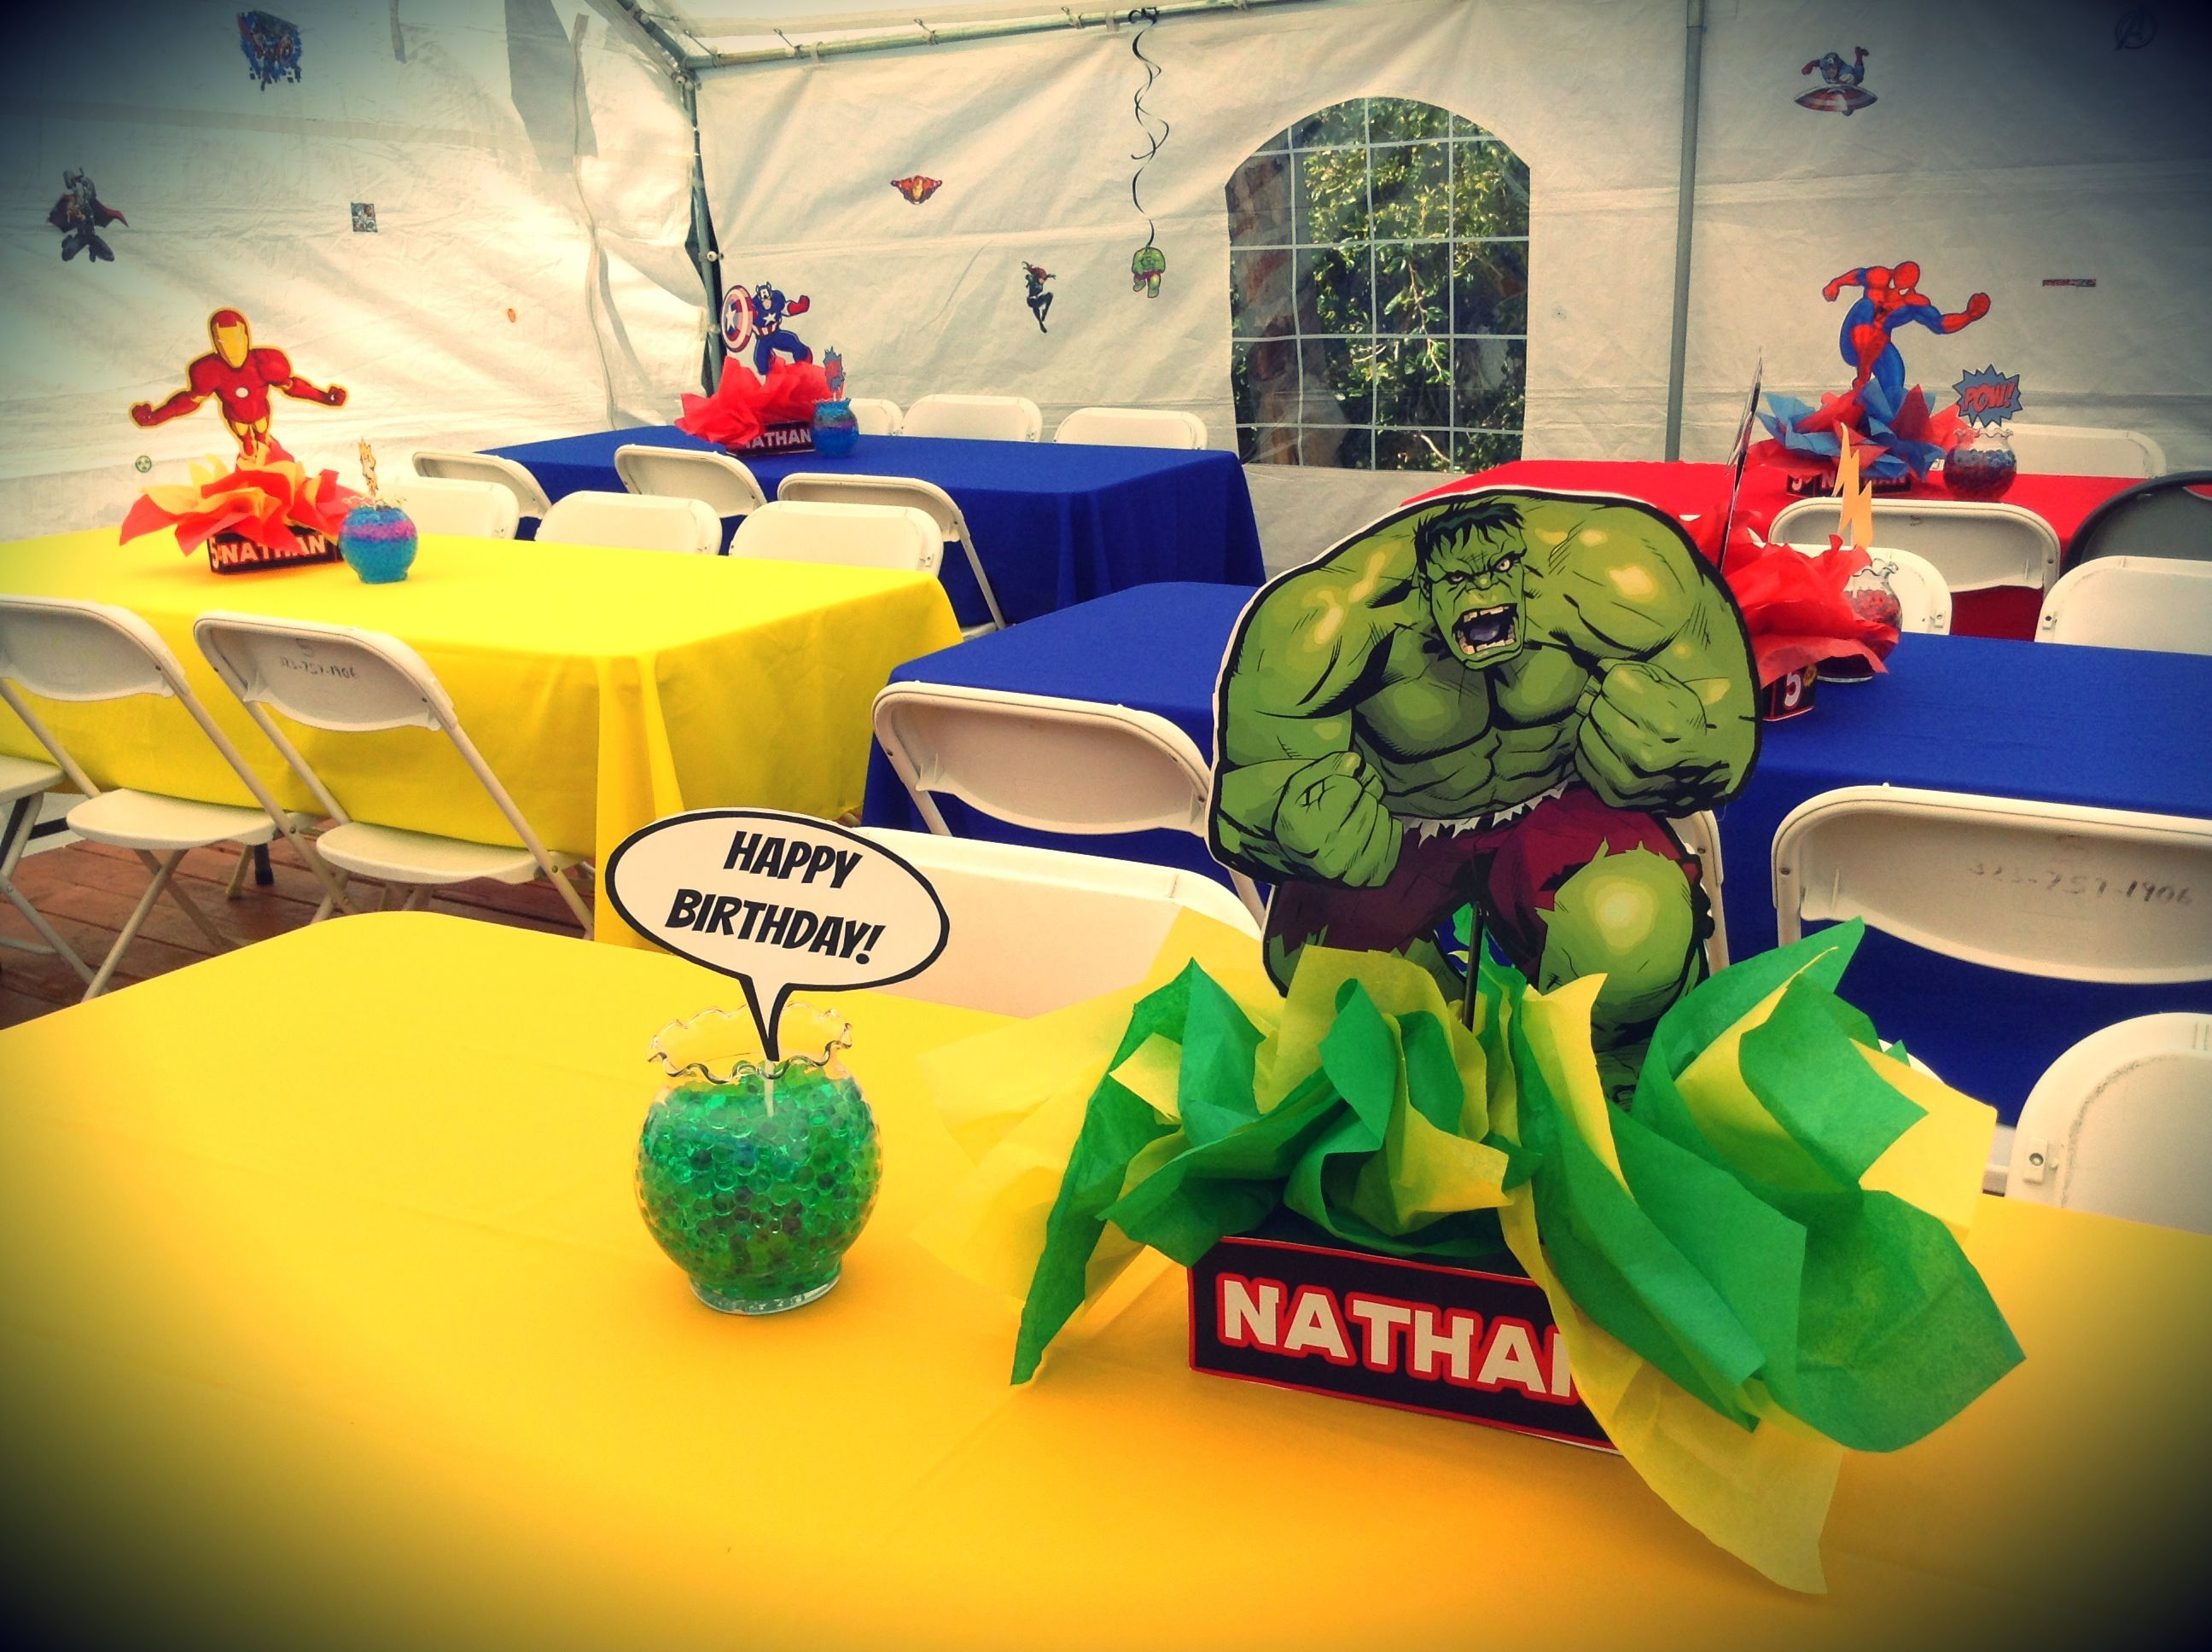 Avengers Party Decorations Superheroes Birthday Party Decorations Iron Man Superman Batman